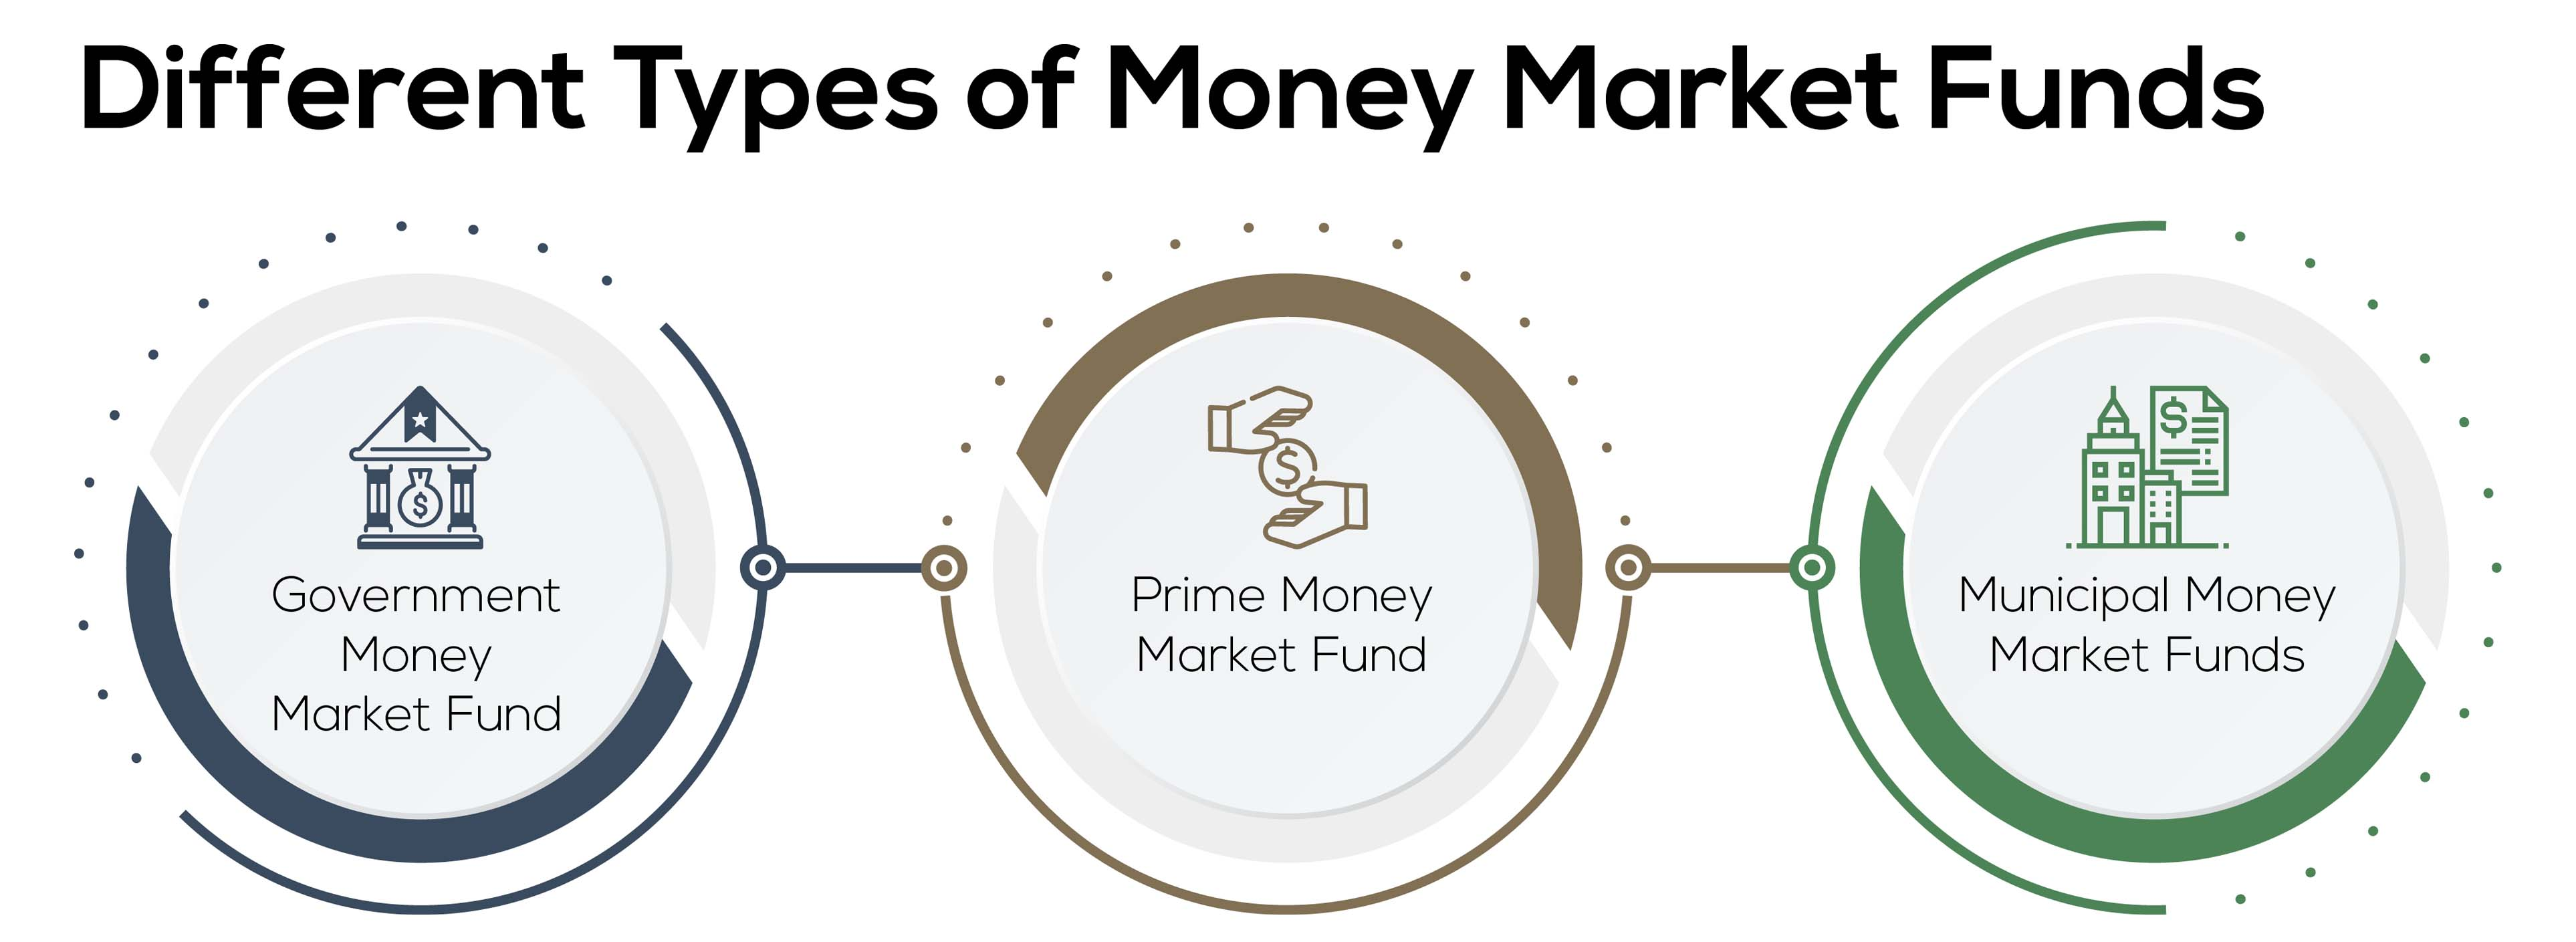 Different types of money market accounts